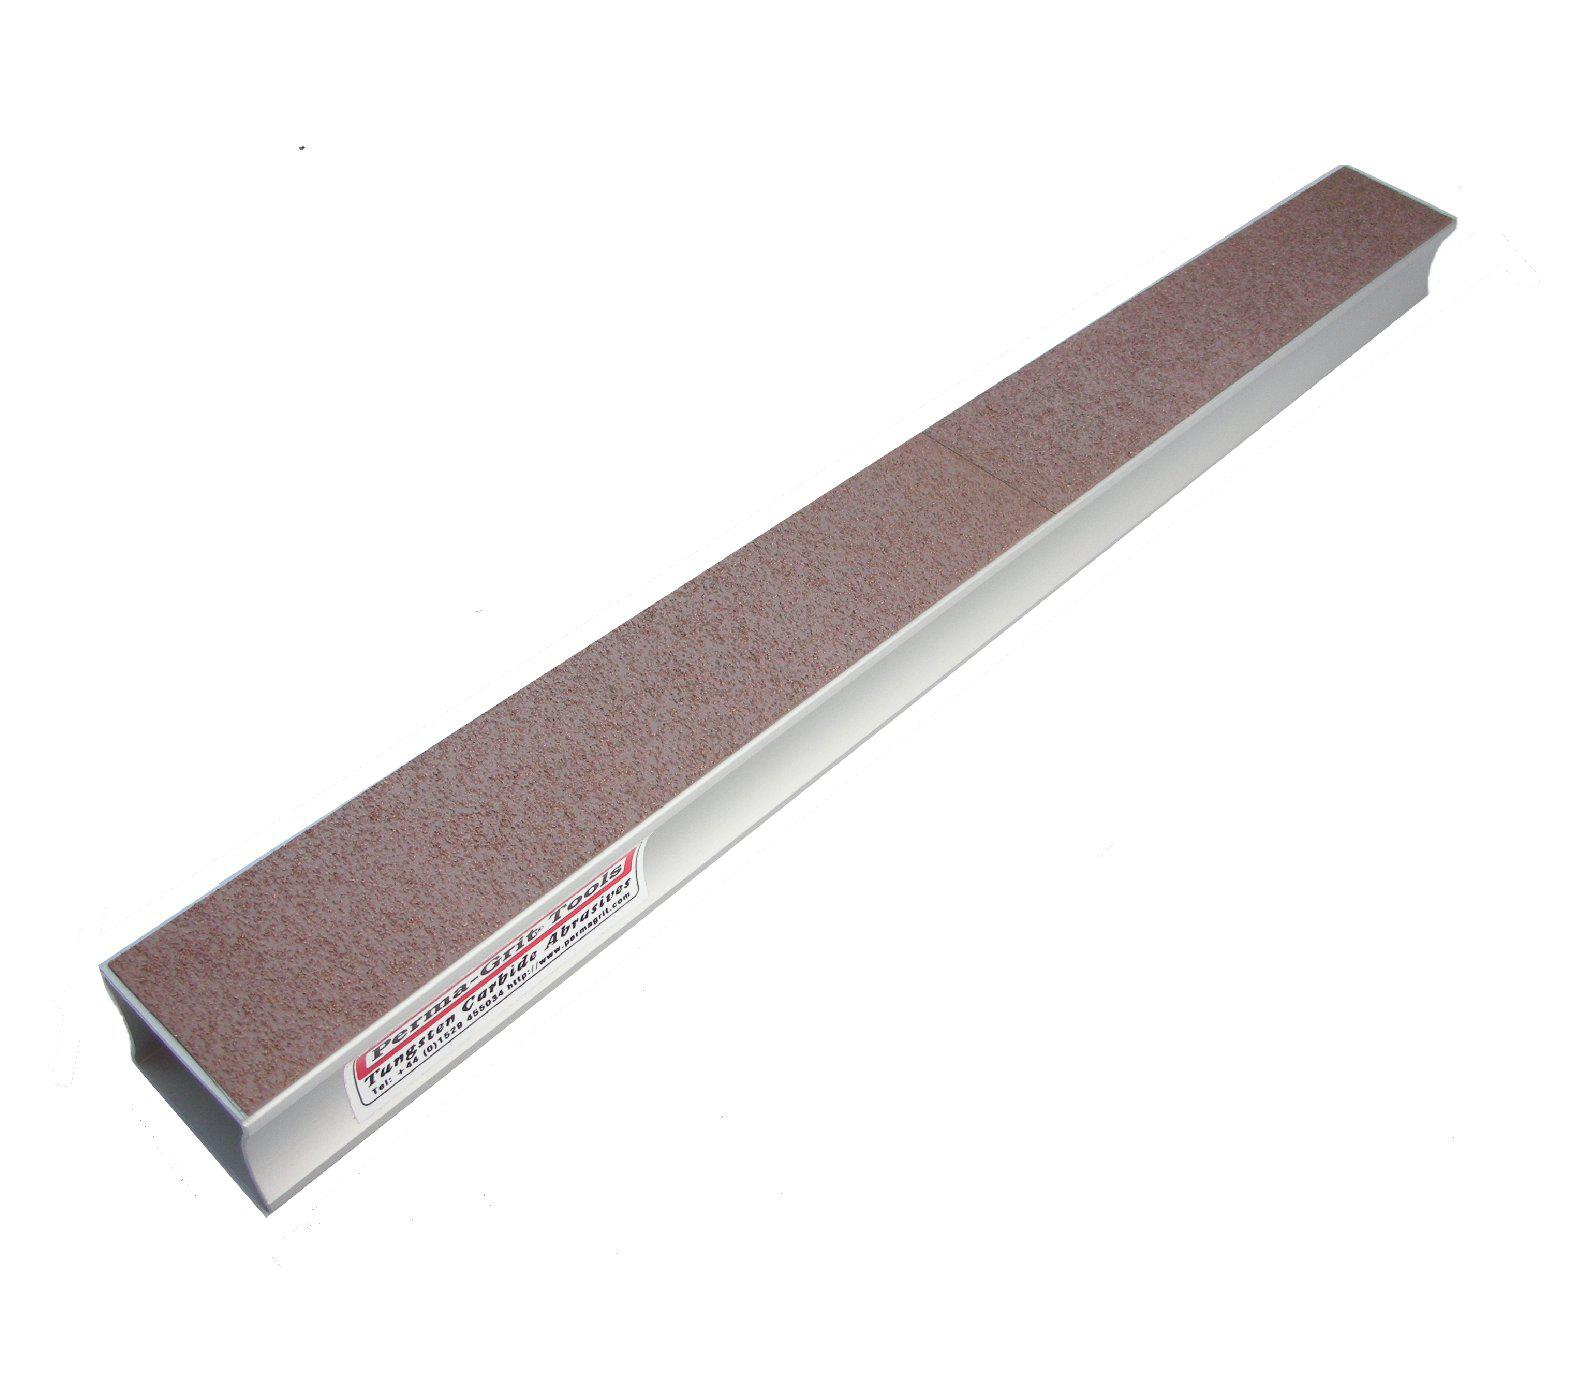 Sanding Block Coarse/Fine 560x52mm (22